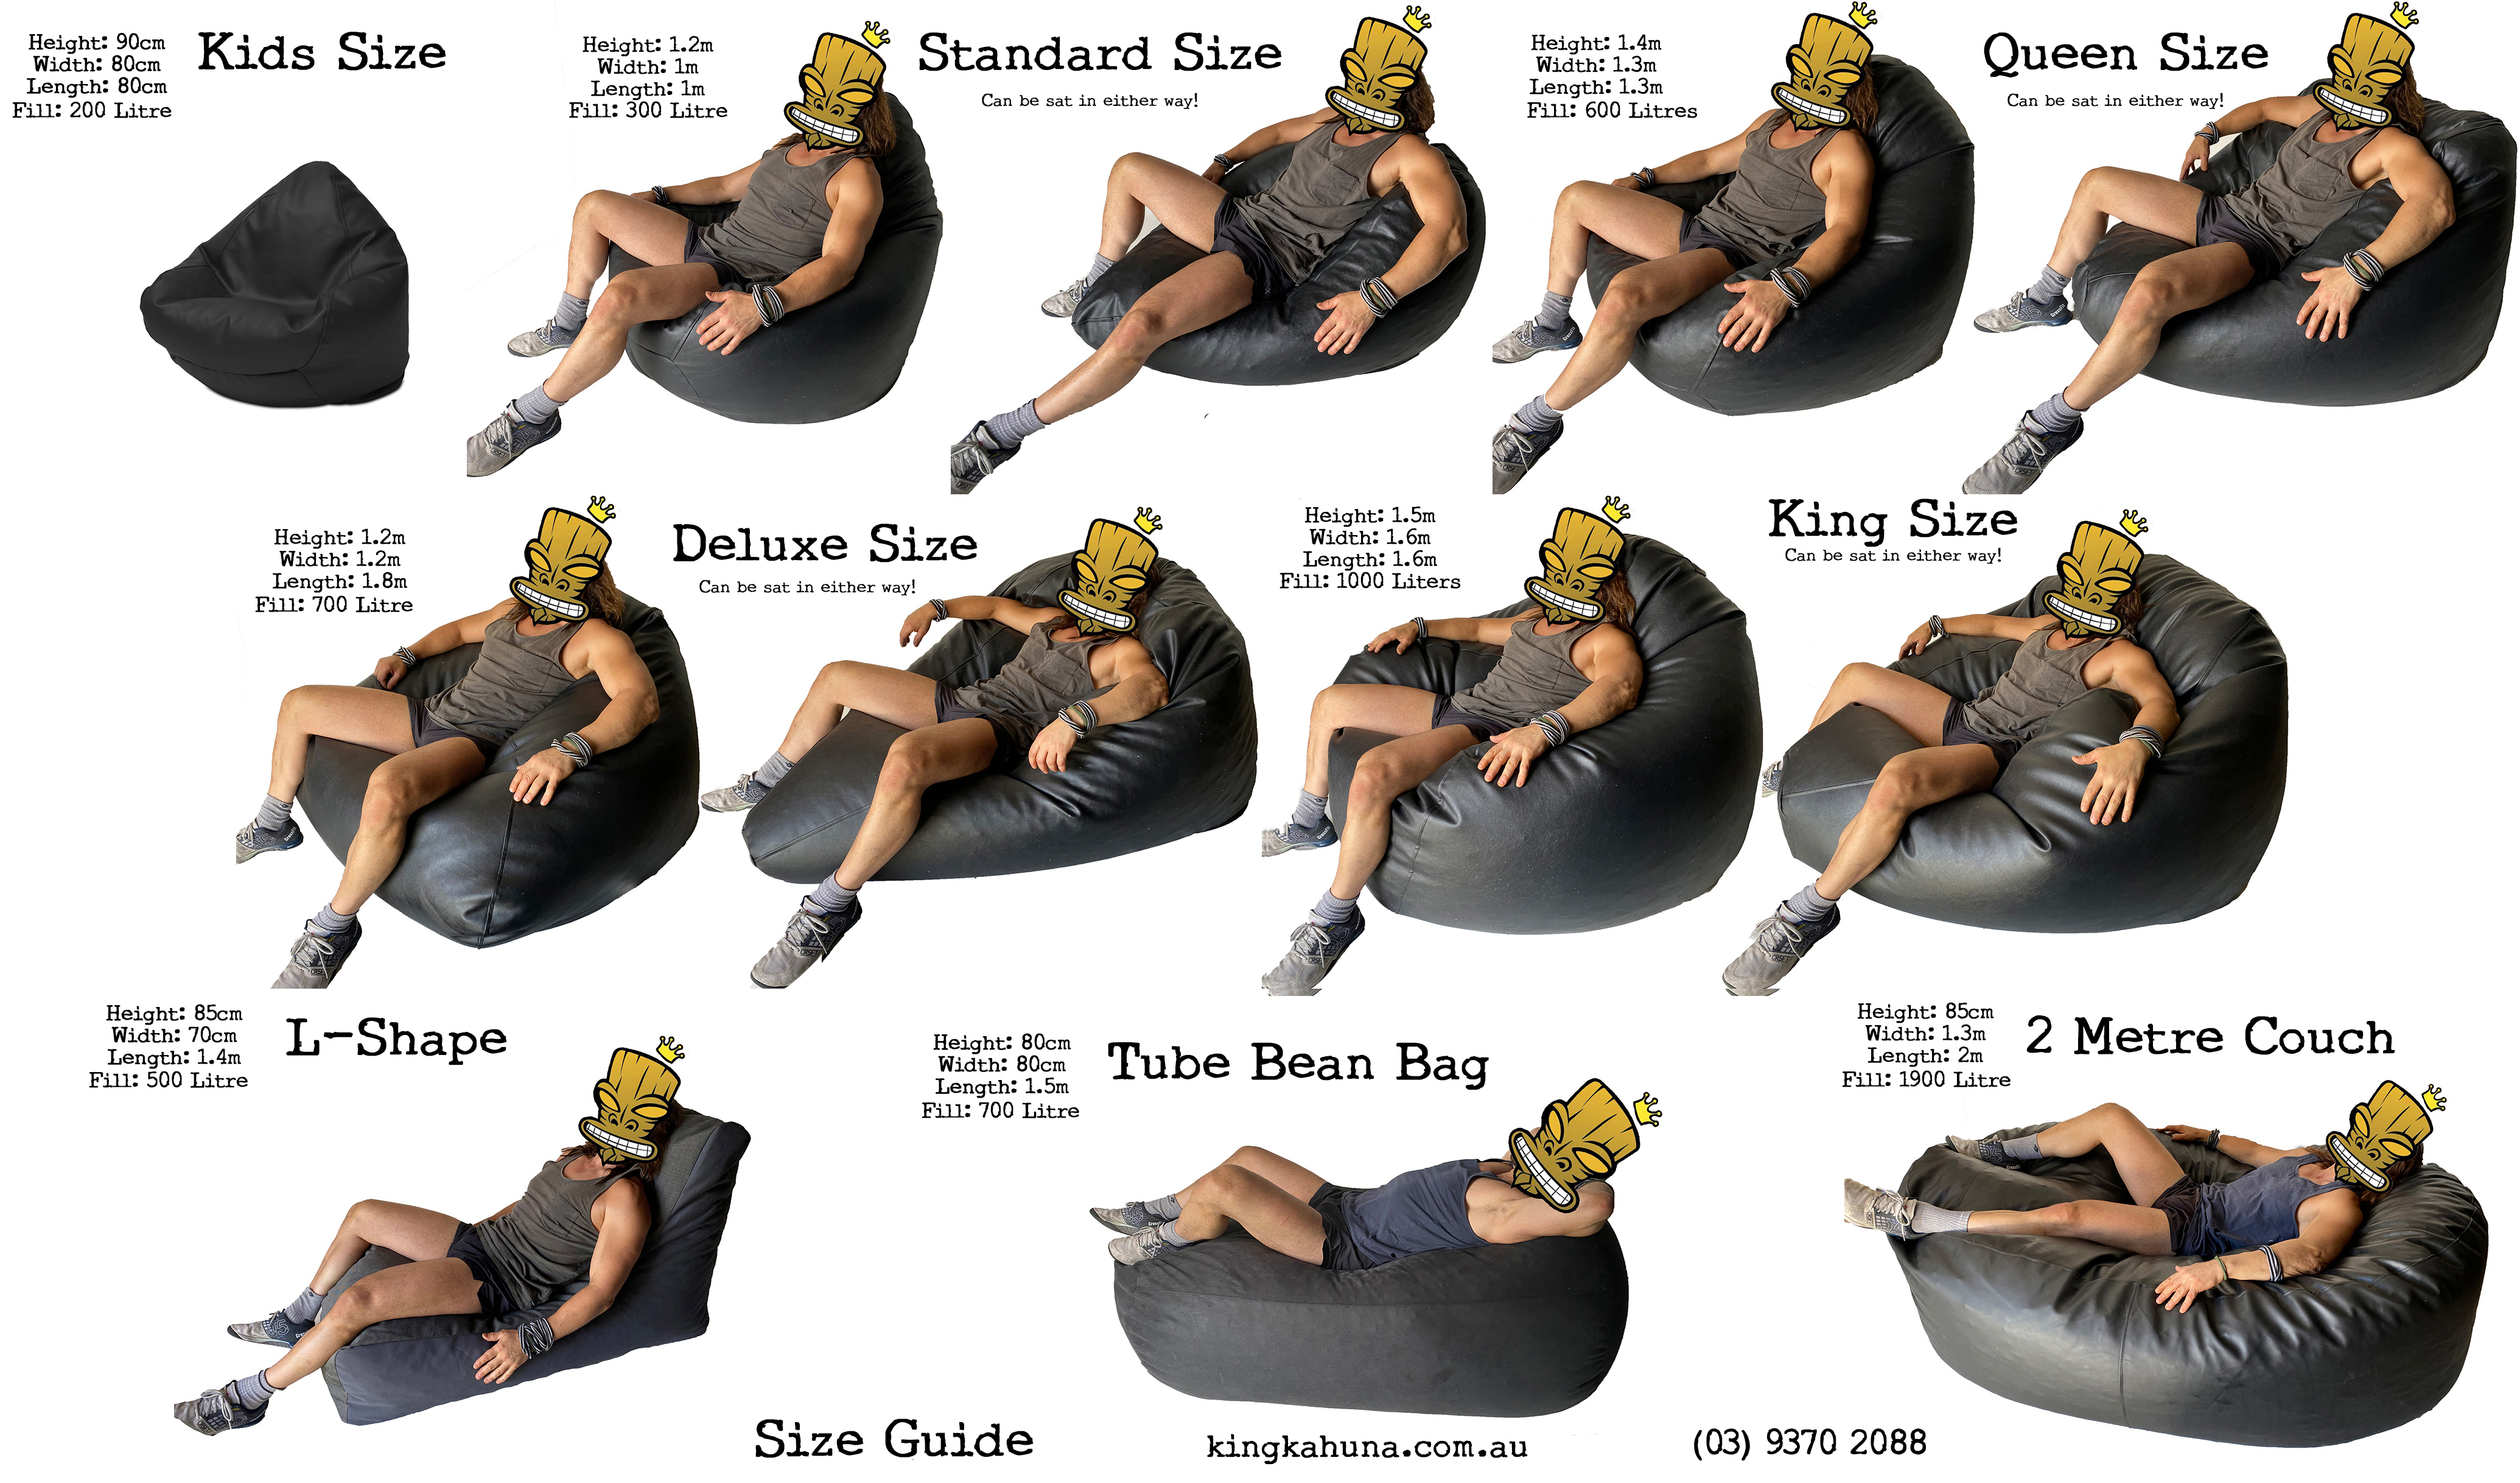 Sunbrella Outdoor King Size Bean Bag In Assorted Colours..